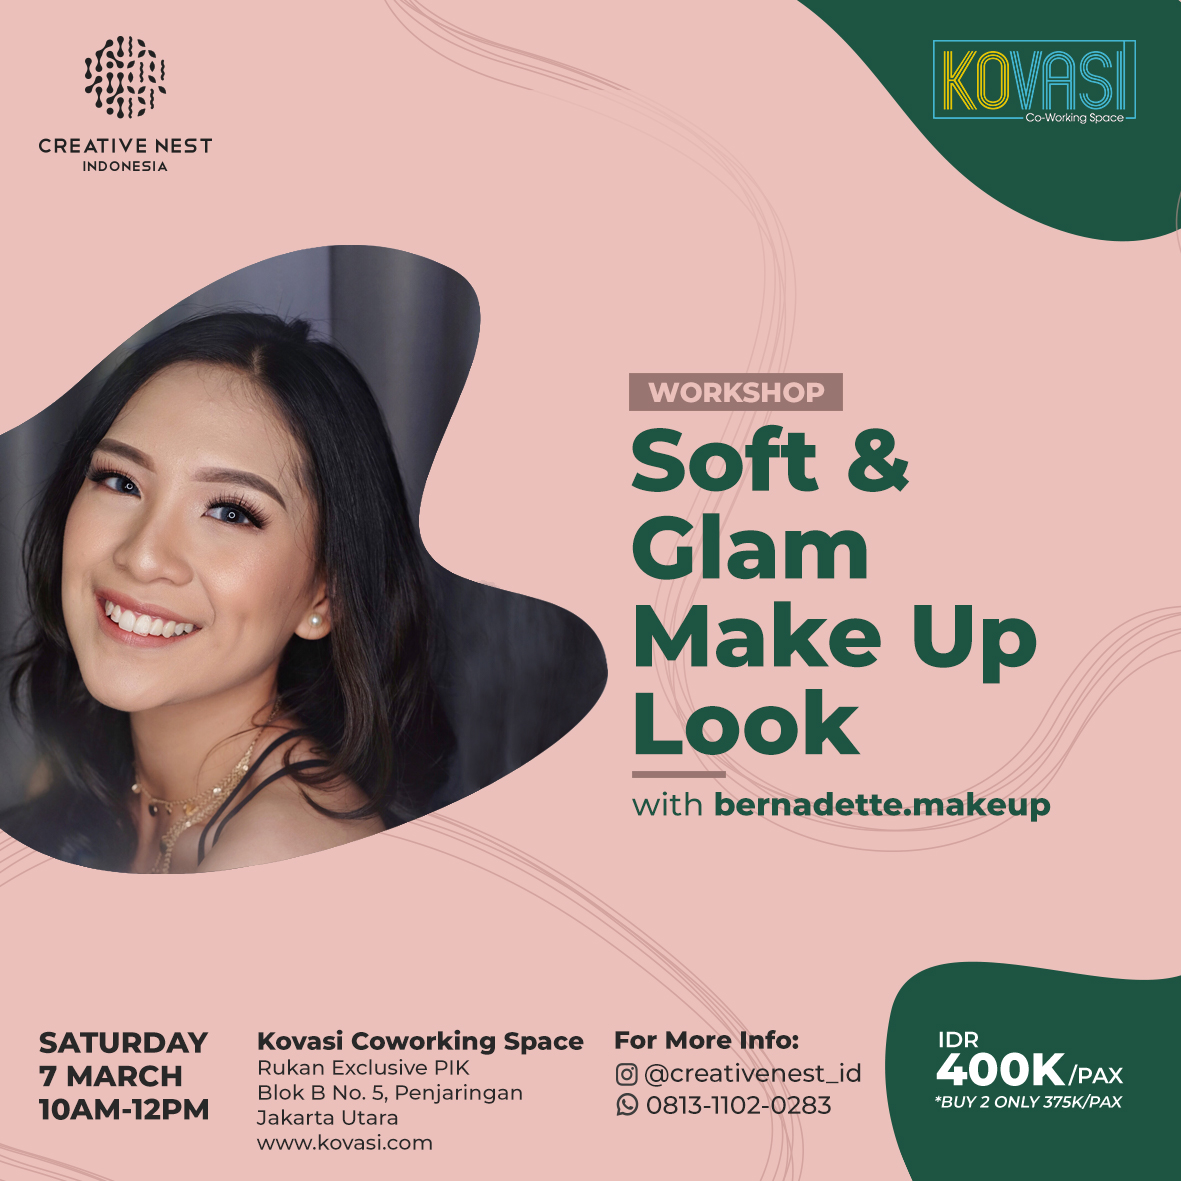 Soft and Glam Make Up Look